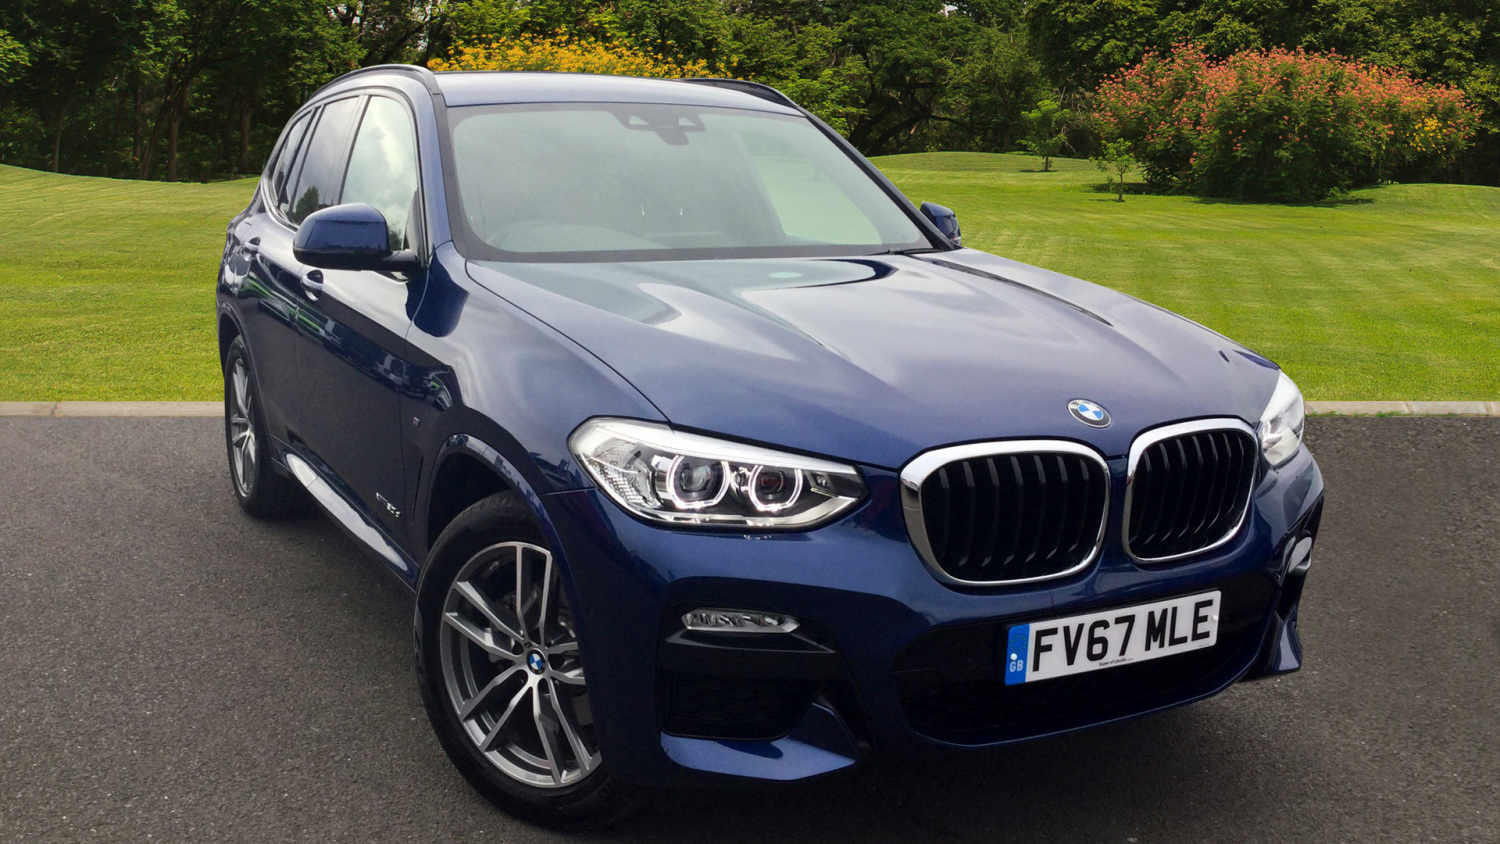 Used Bmw X3 Xdrive20d M Sport 5dr Step Auto Diesel Estate For Sale